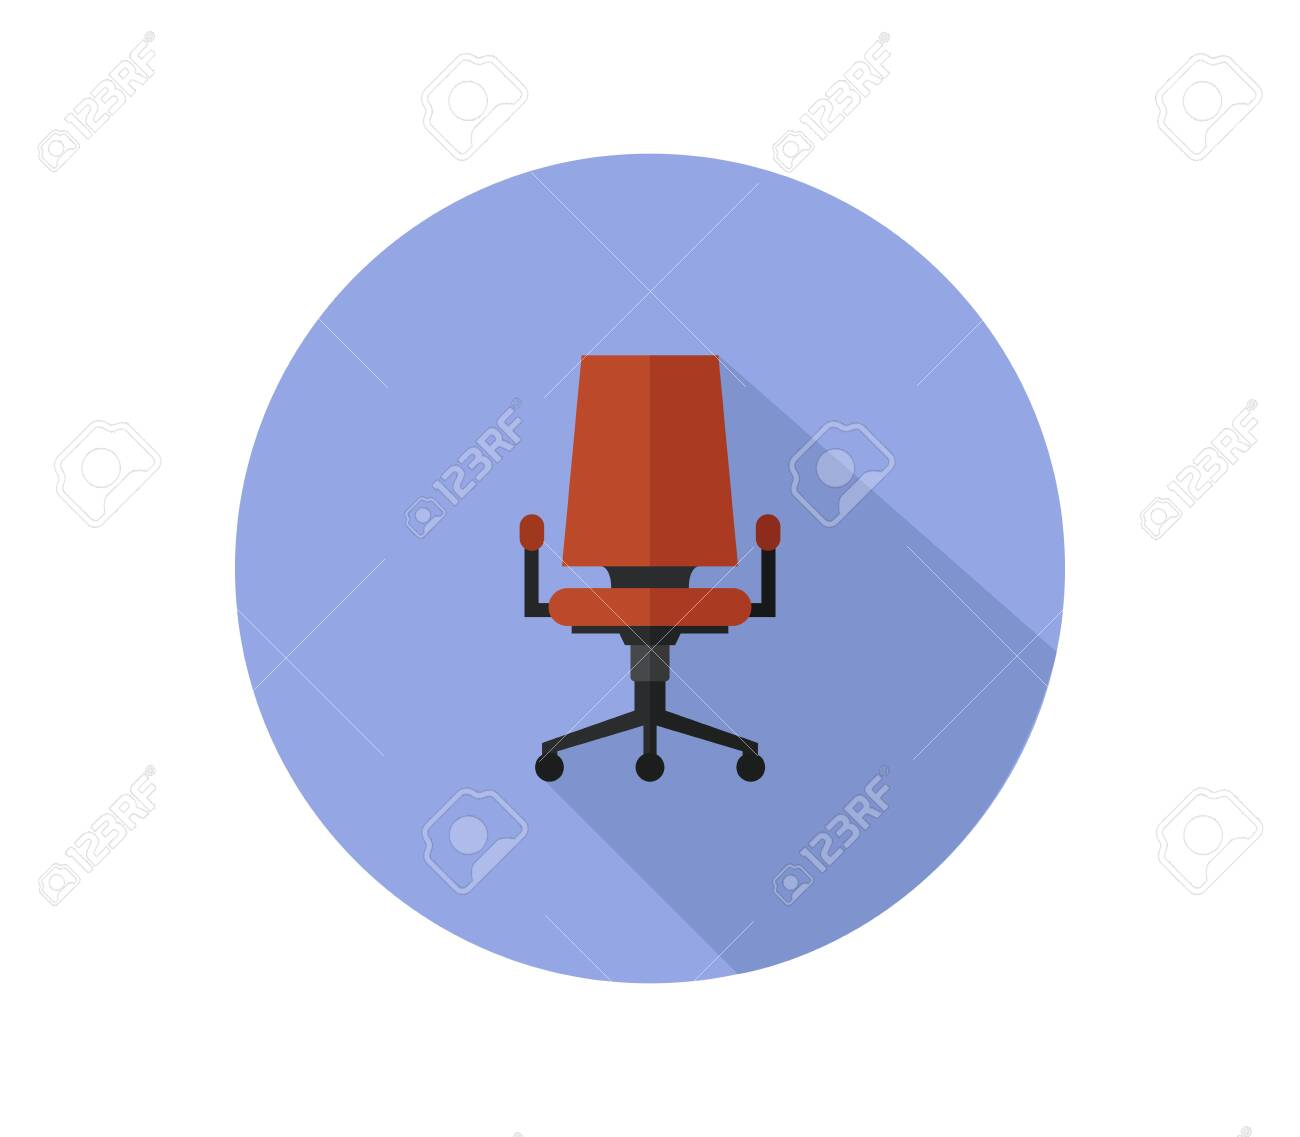 office chair - 154027320